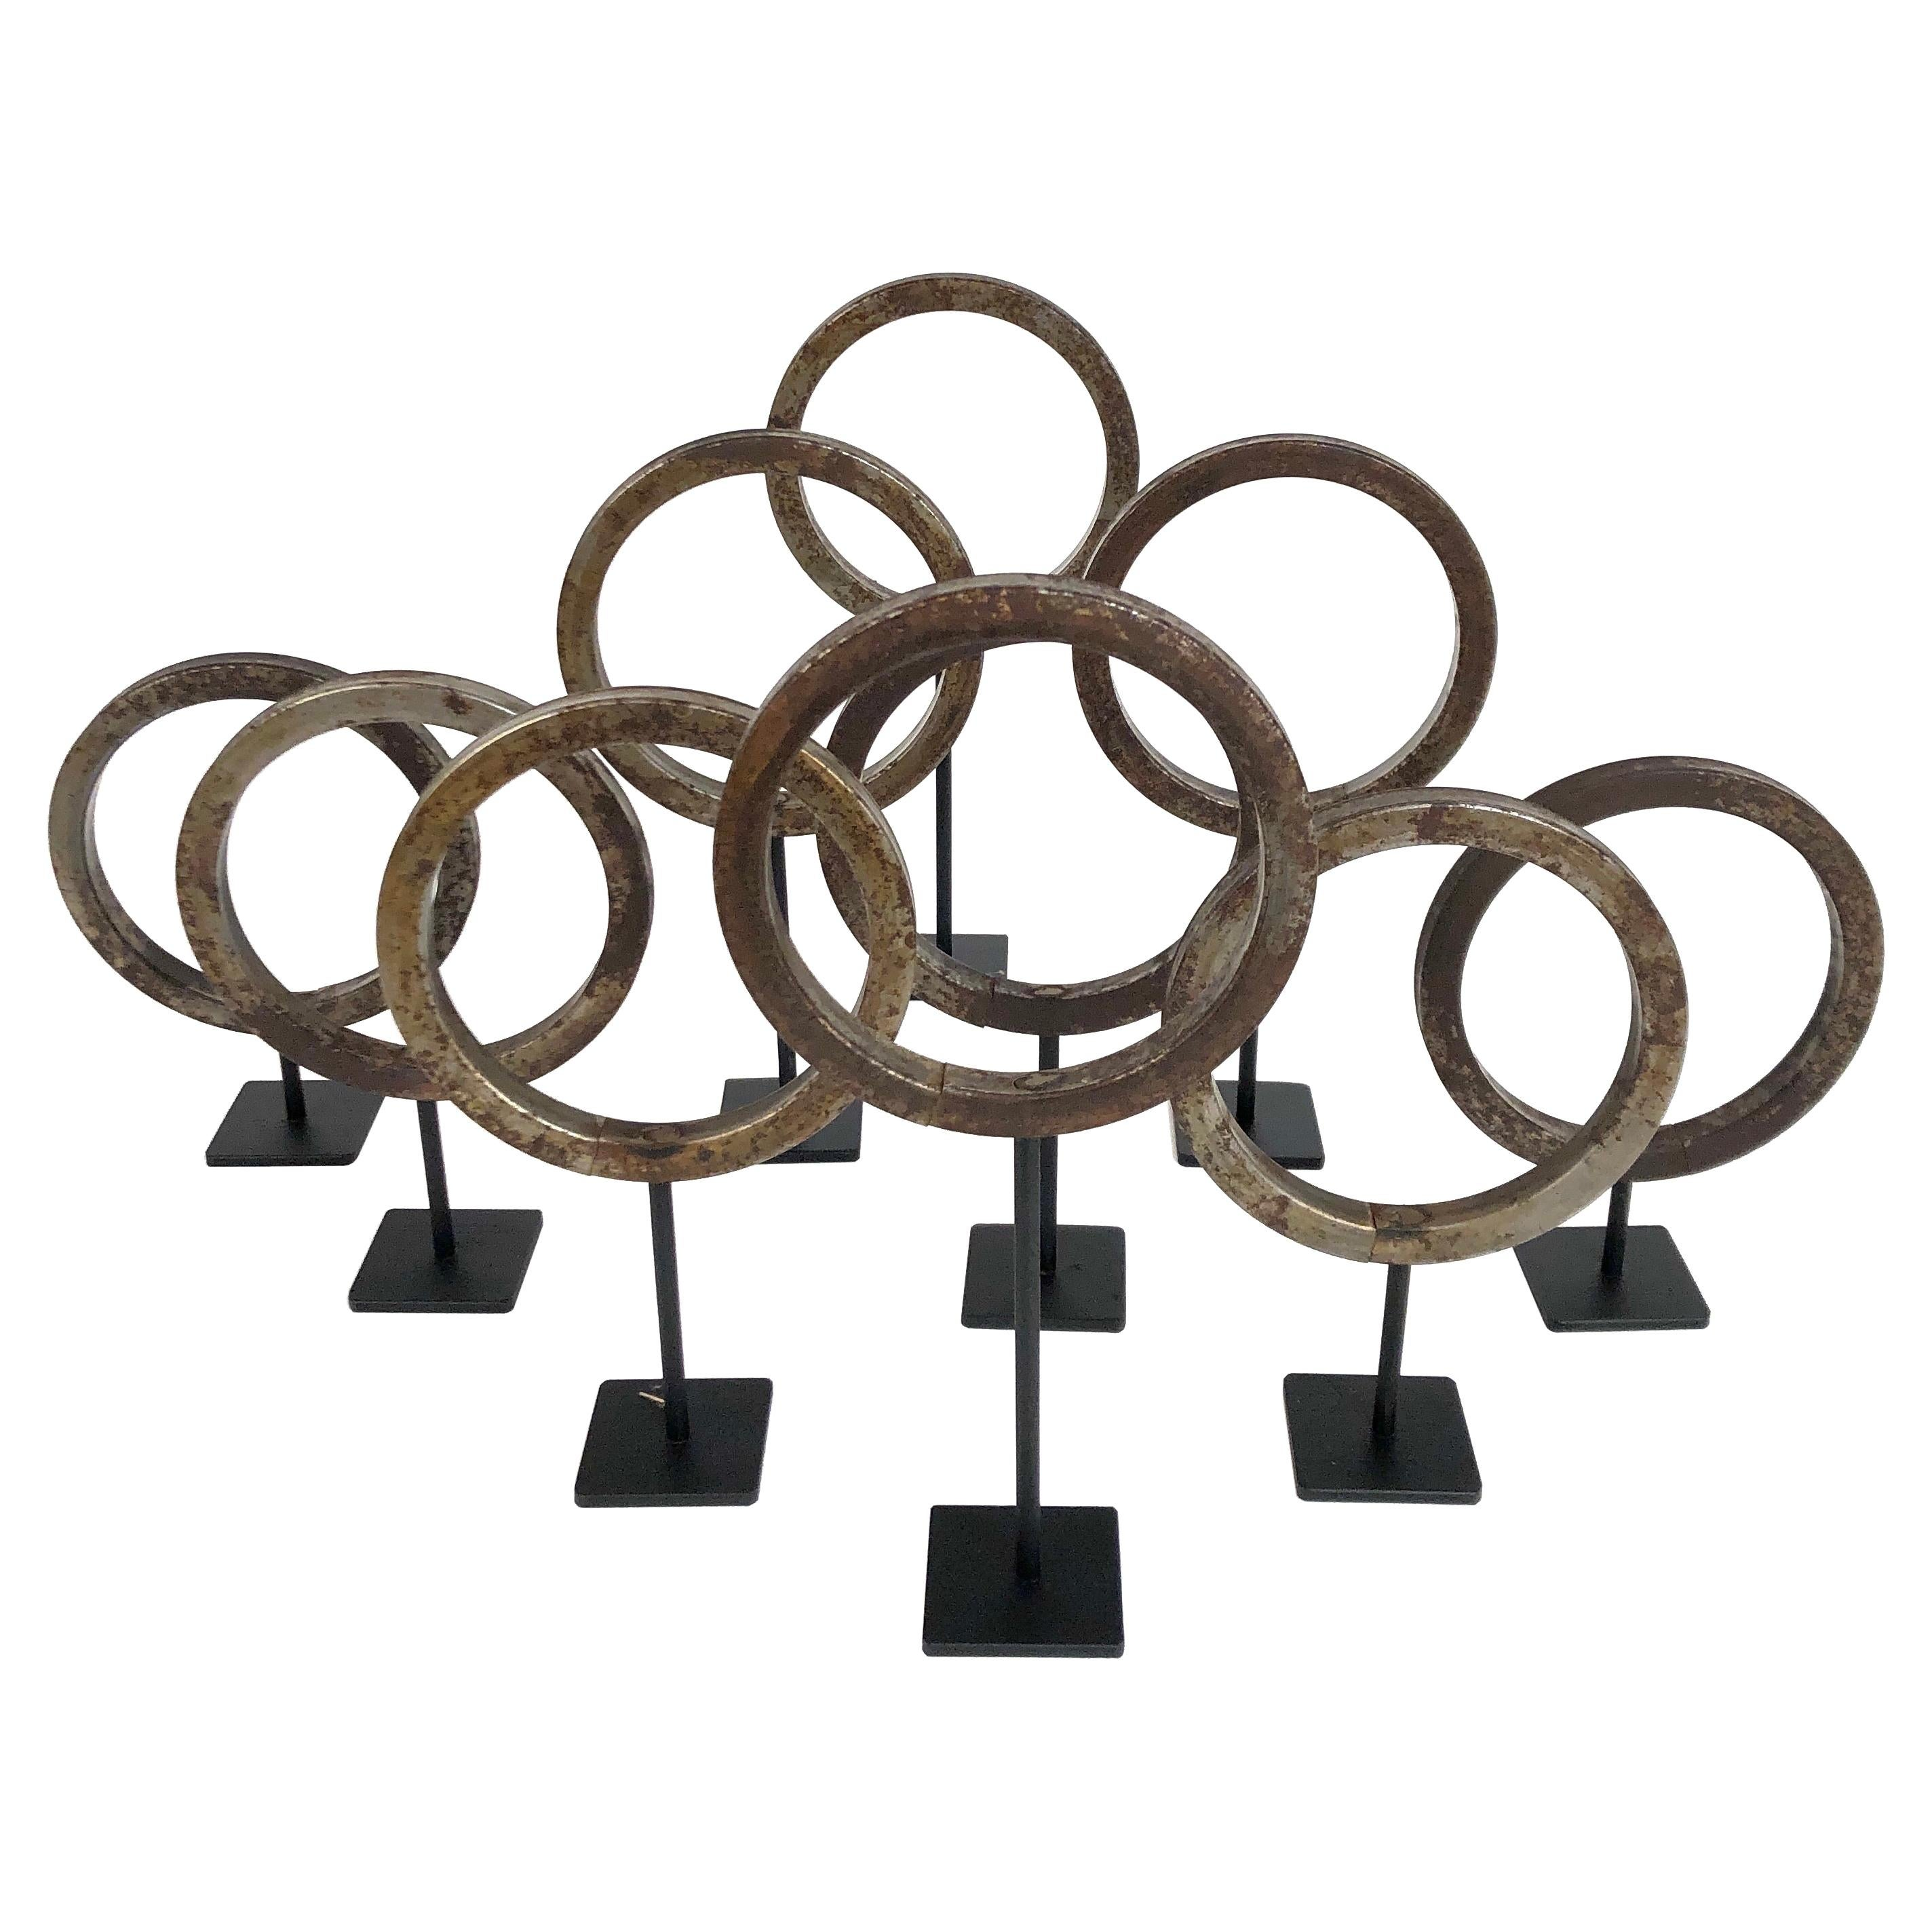 Antique Industrial Steel Ring Collection on Custom Stands '10'